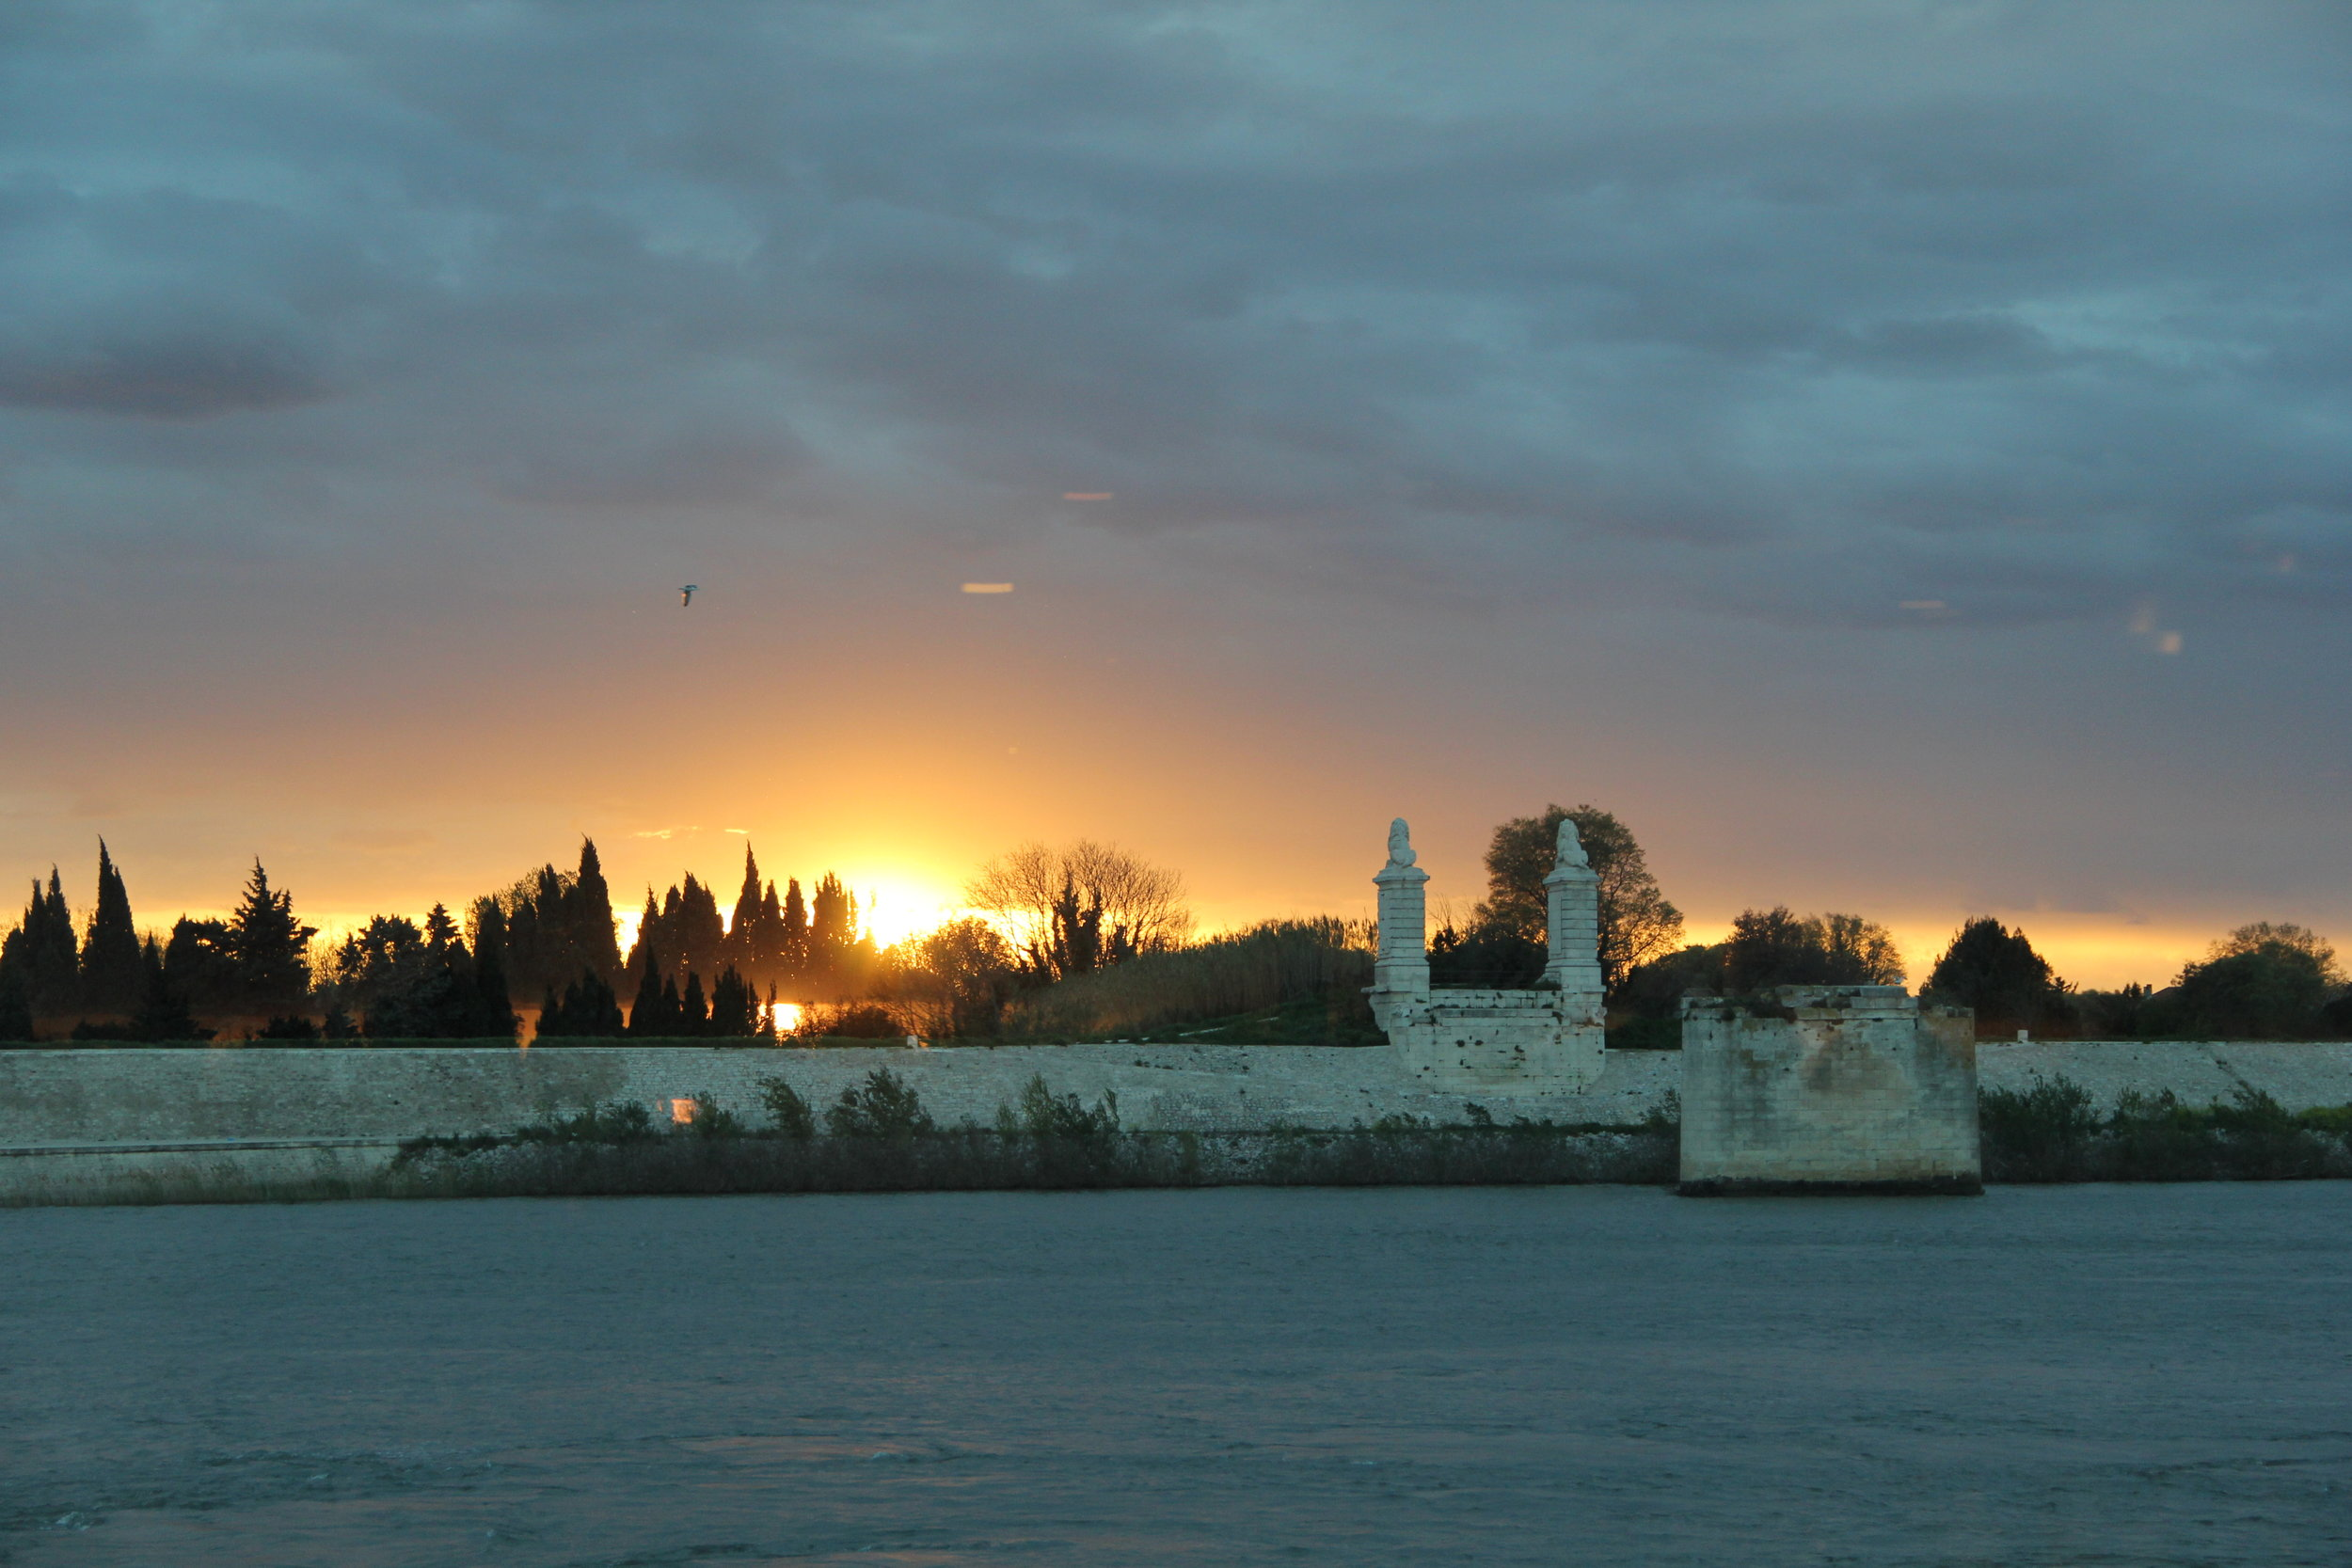 Sunset in the Port of Arles